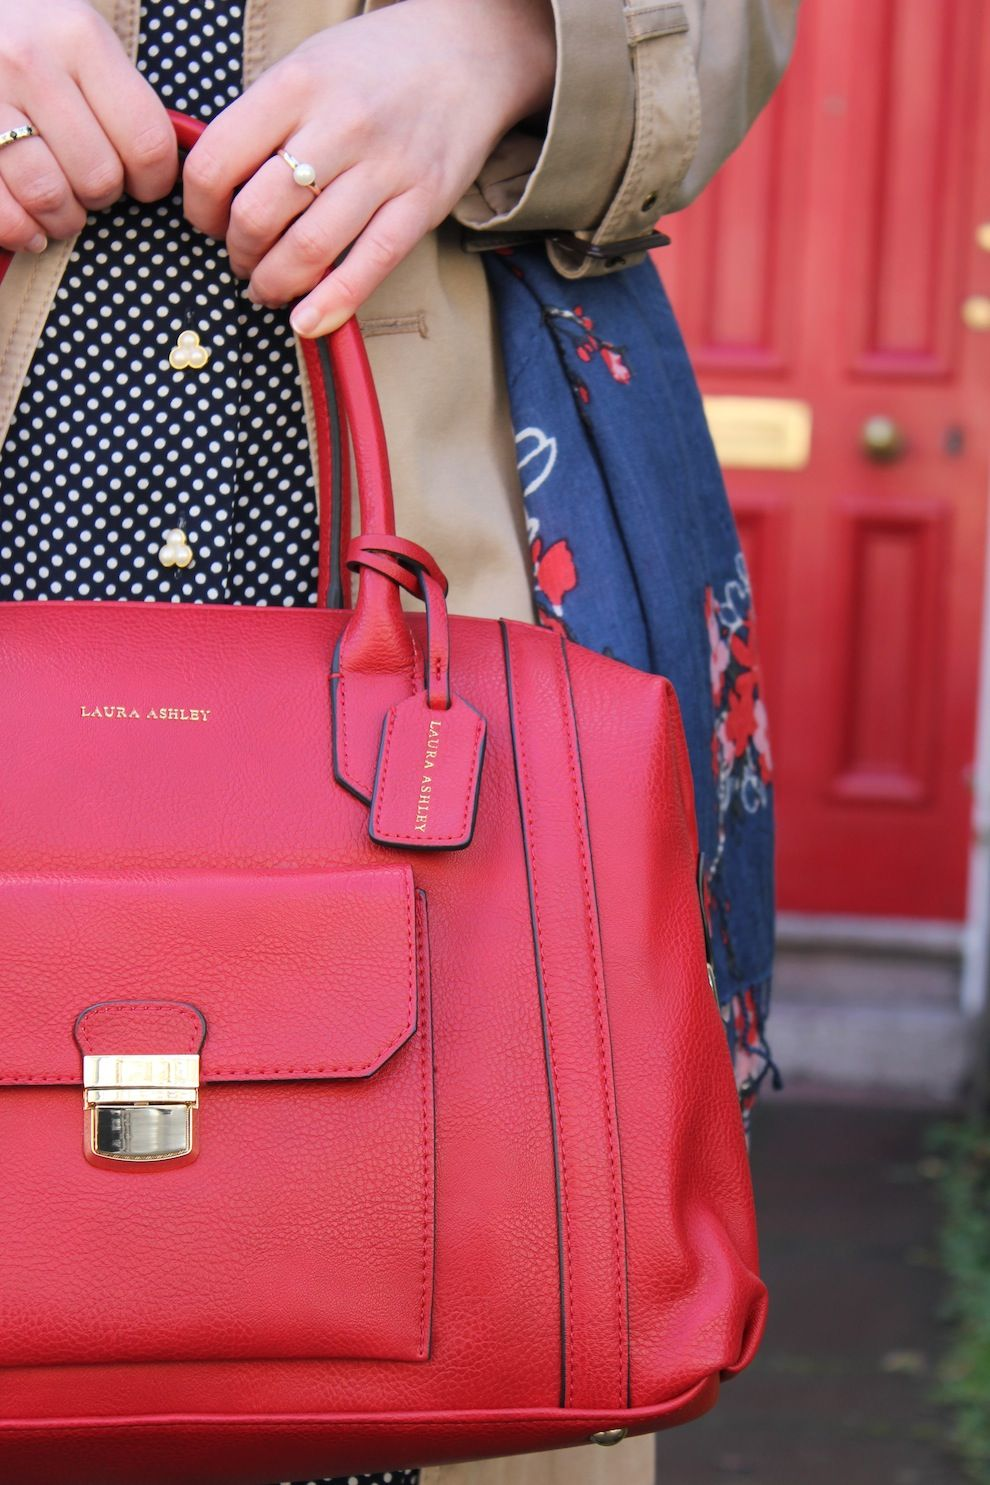 Laura Ashley Blog Arm Candy Crush Handbags To Suit Any Style